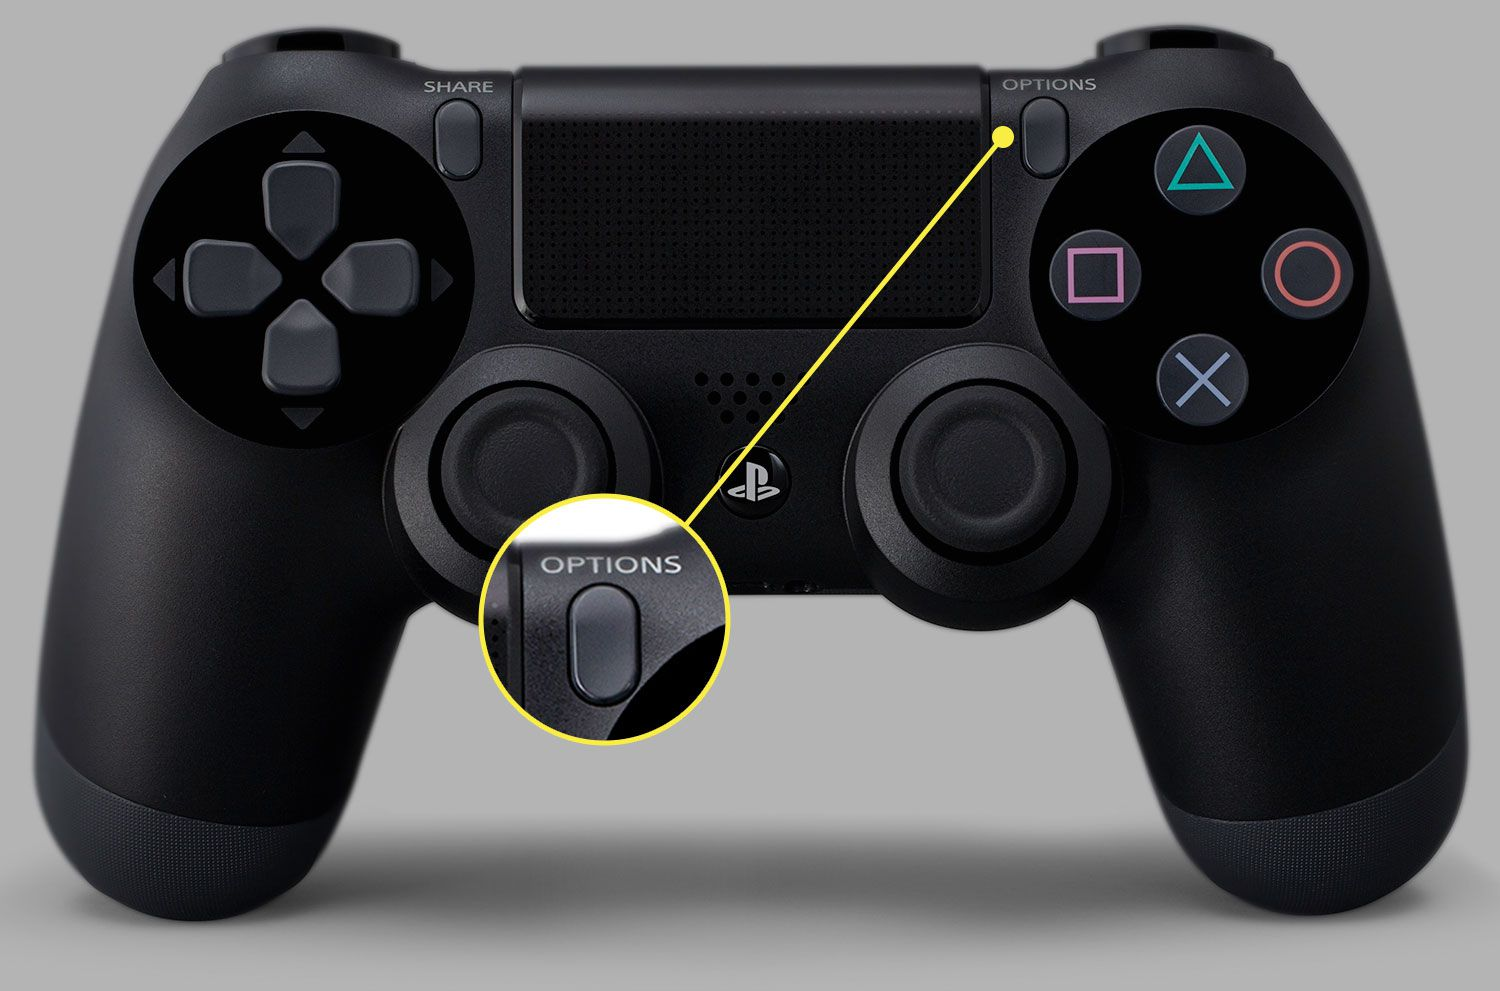 A DualShock 4 controller with the Options button highlighted